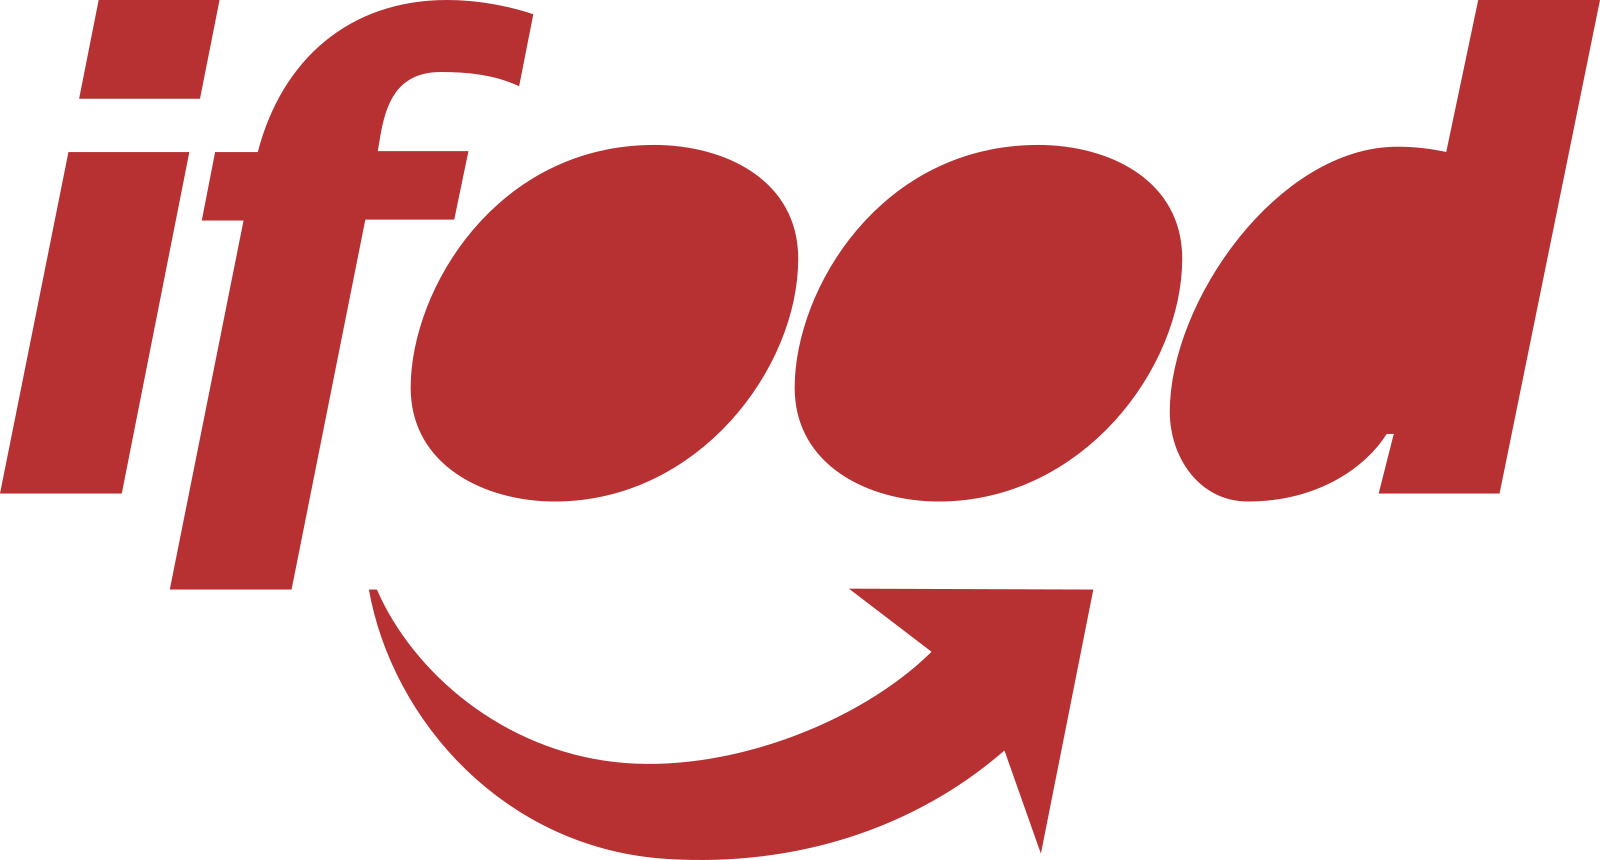 ifood logo 4 - ifood Logo